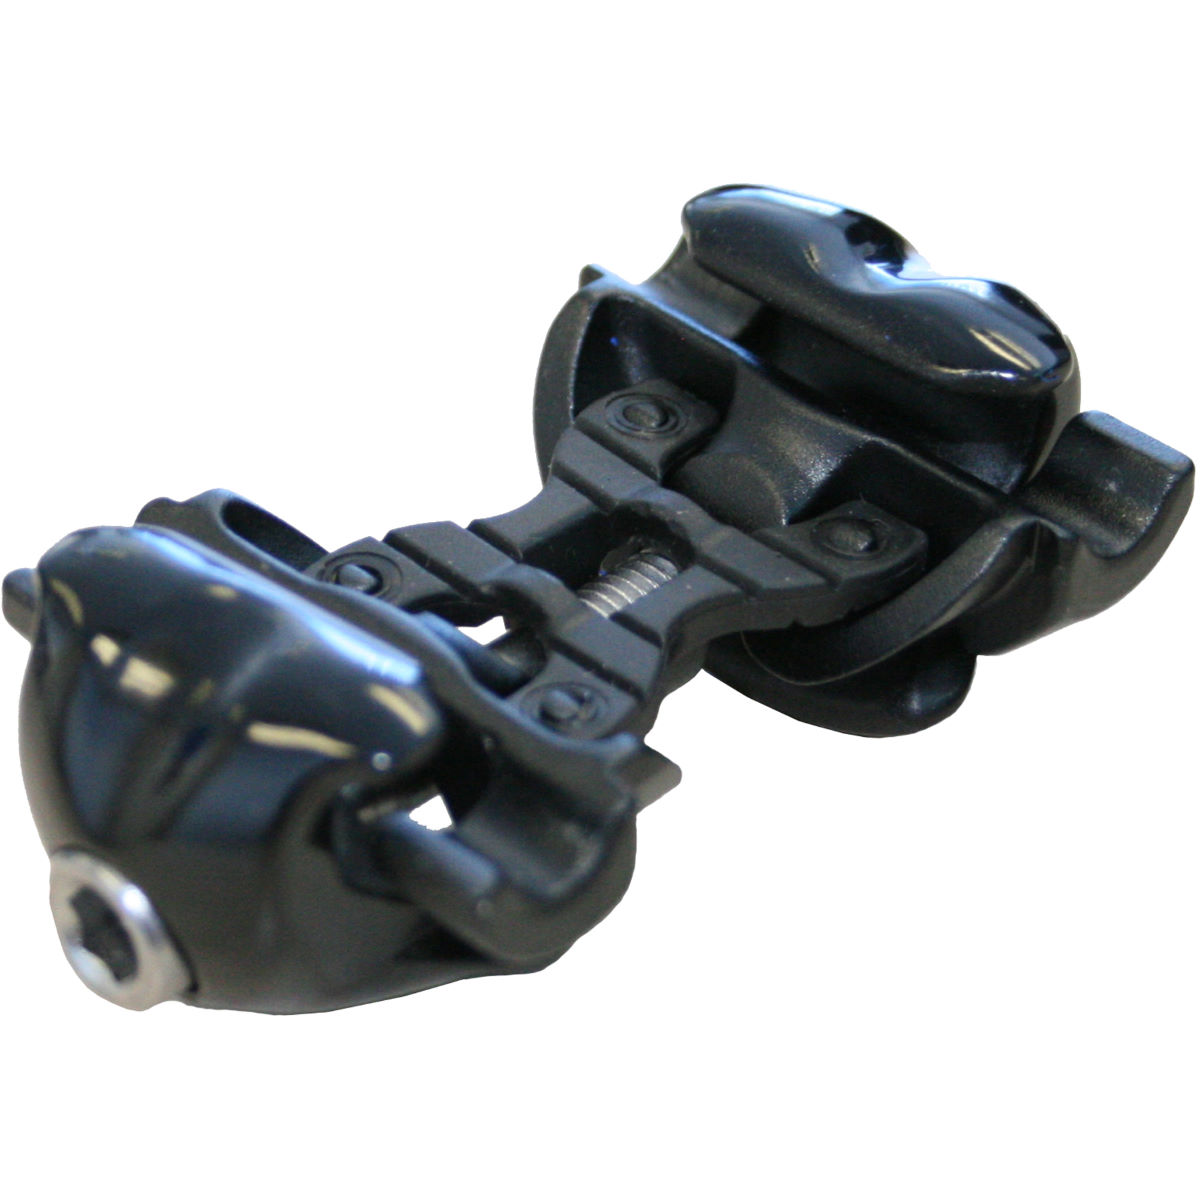 Ritchey Ritchey WCS Alloy 1 Bolt Seatpost - Complete Clamp Set   Seat Post Clamps